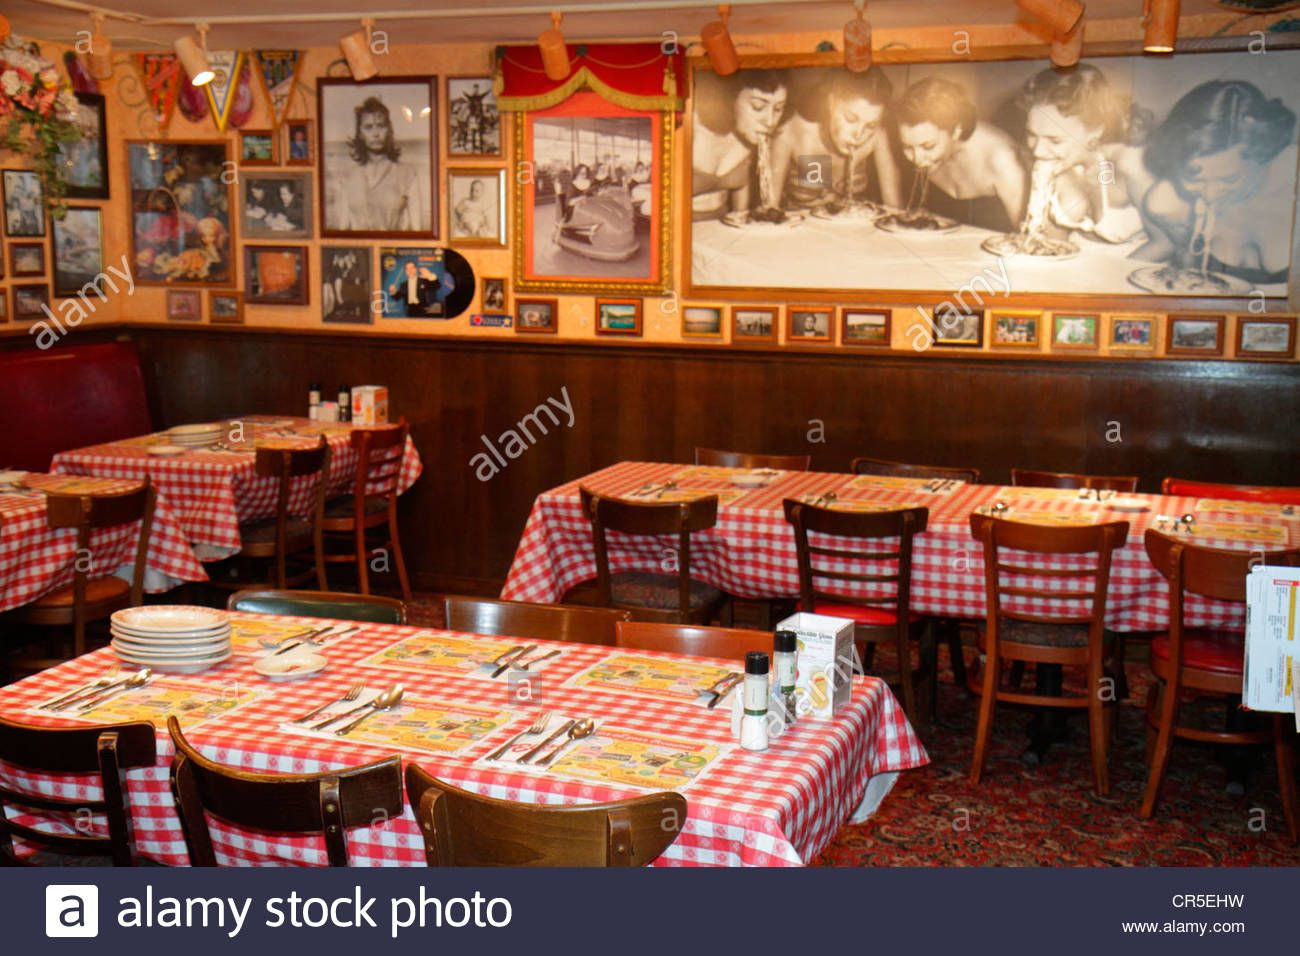 Decoration Restaurant Italien Image Result For Classic Italian Restaurant Decor